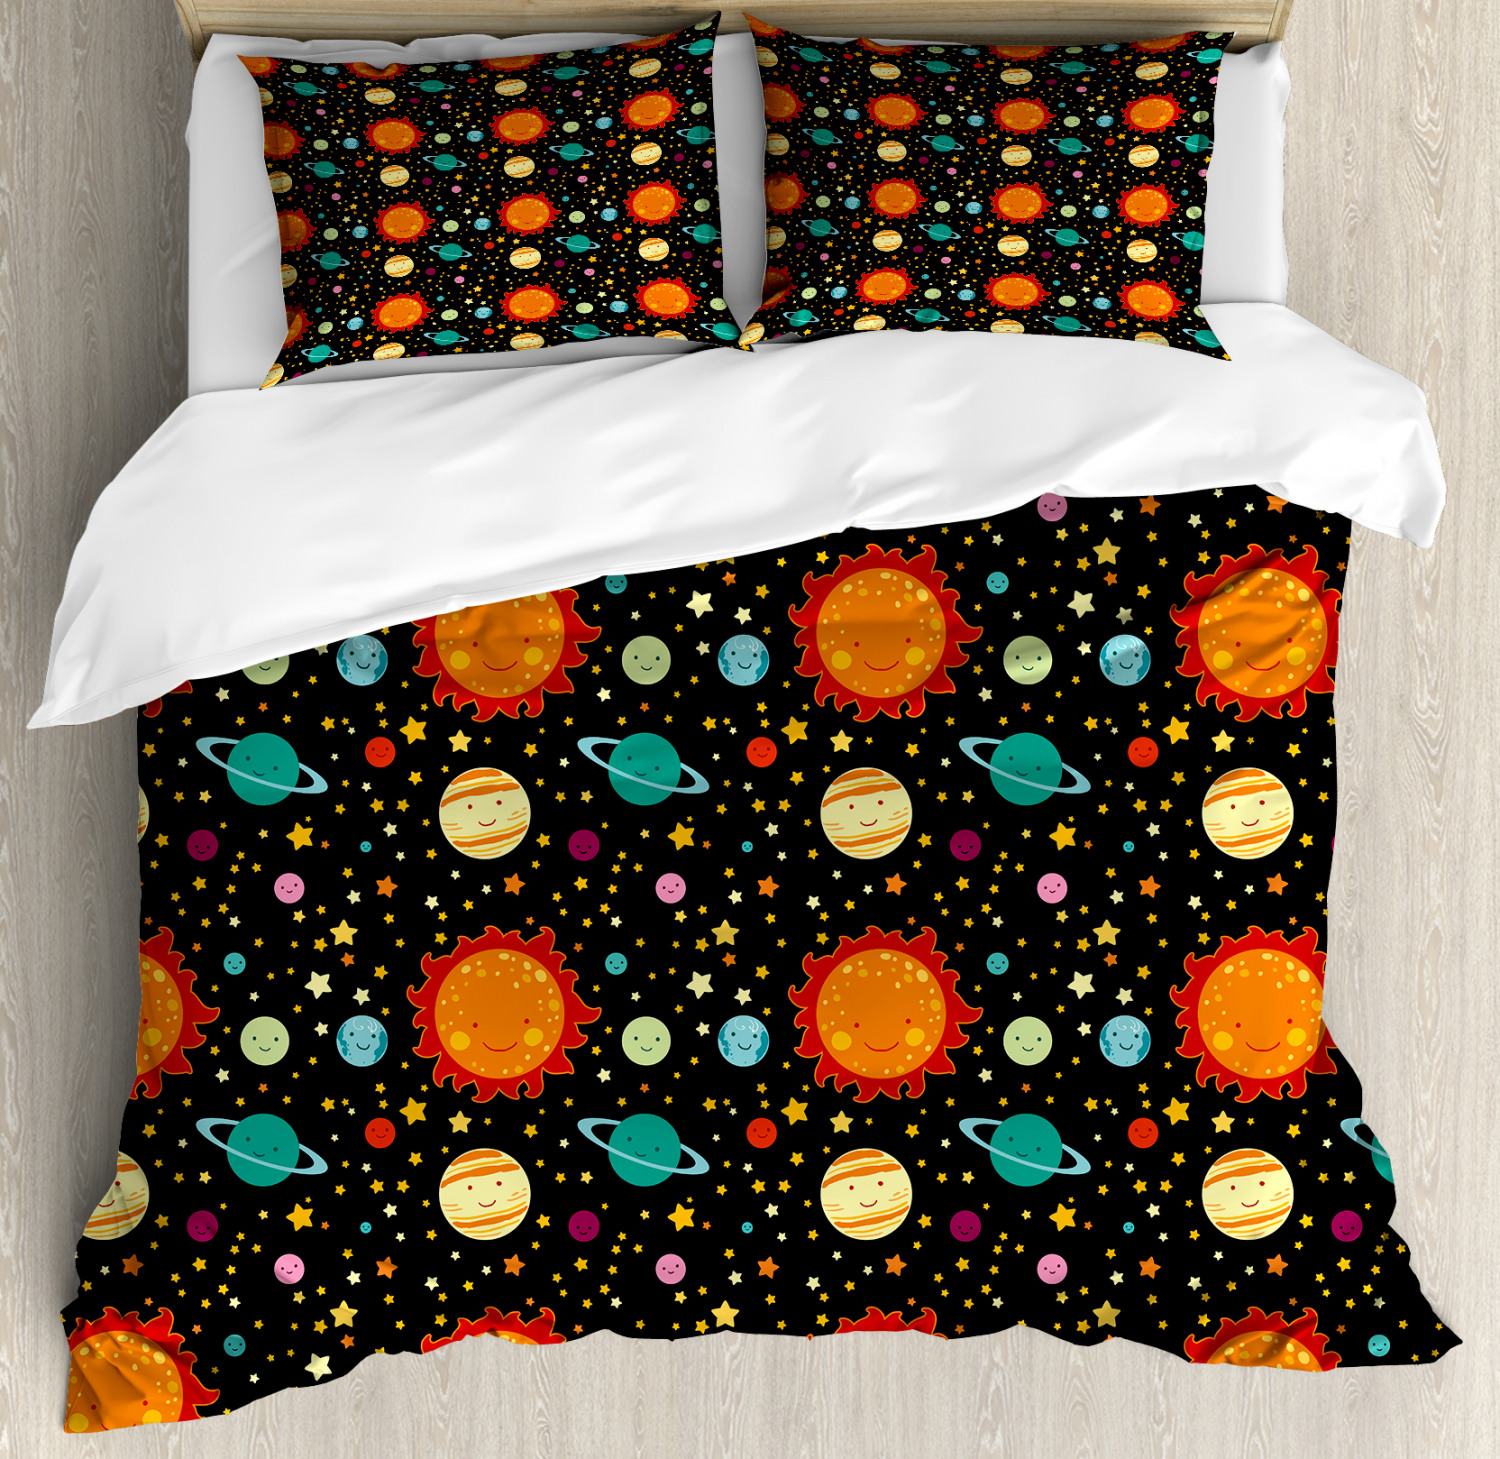 Space Duvet Cover Set with Pillow Shams Cute Smiling Planets Print